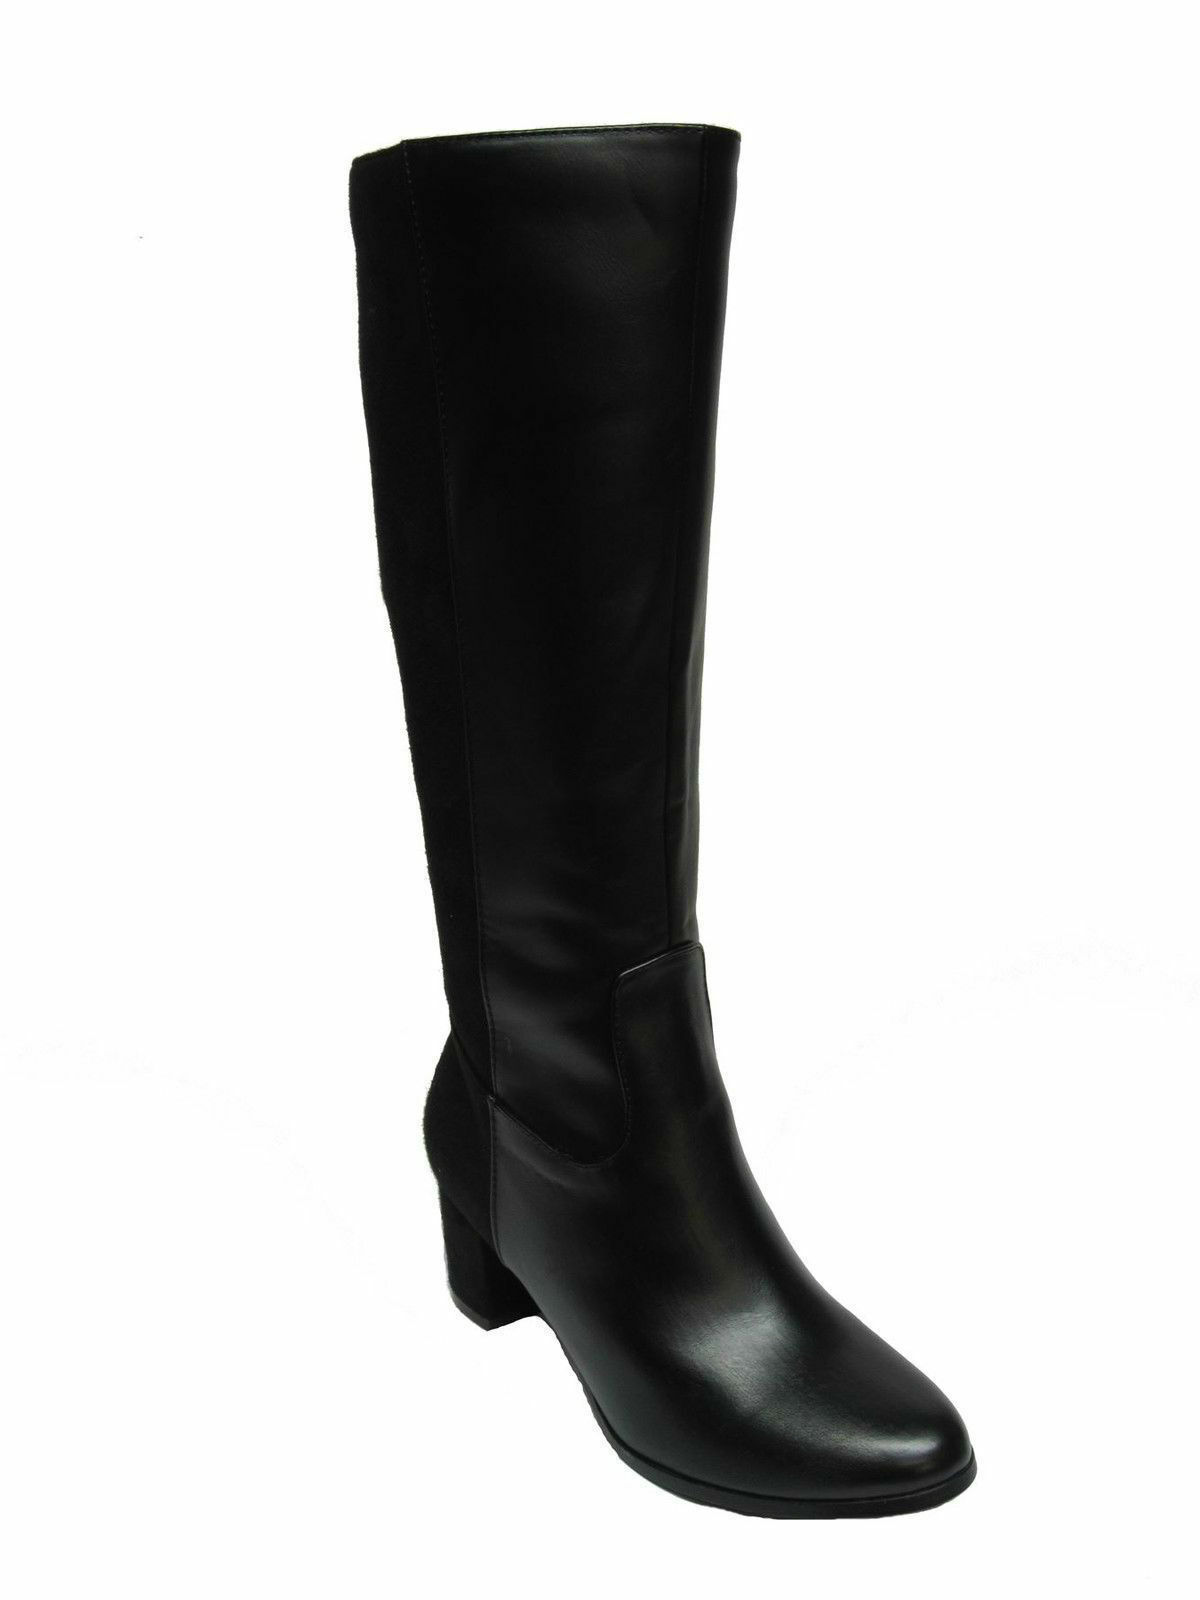 SPOT ON LADIES F50366 ZIP UP SMART FORMAL BOOTS HEELED LONG KNEE LENGTH BOOTS FORMAL 3f7cfa